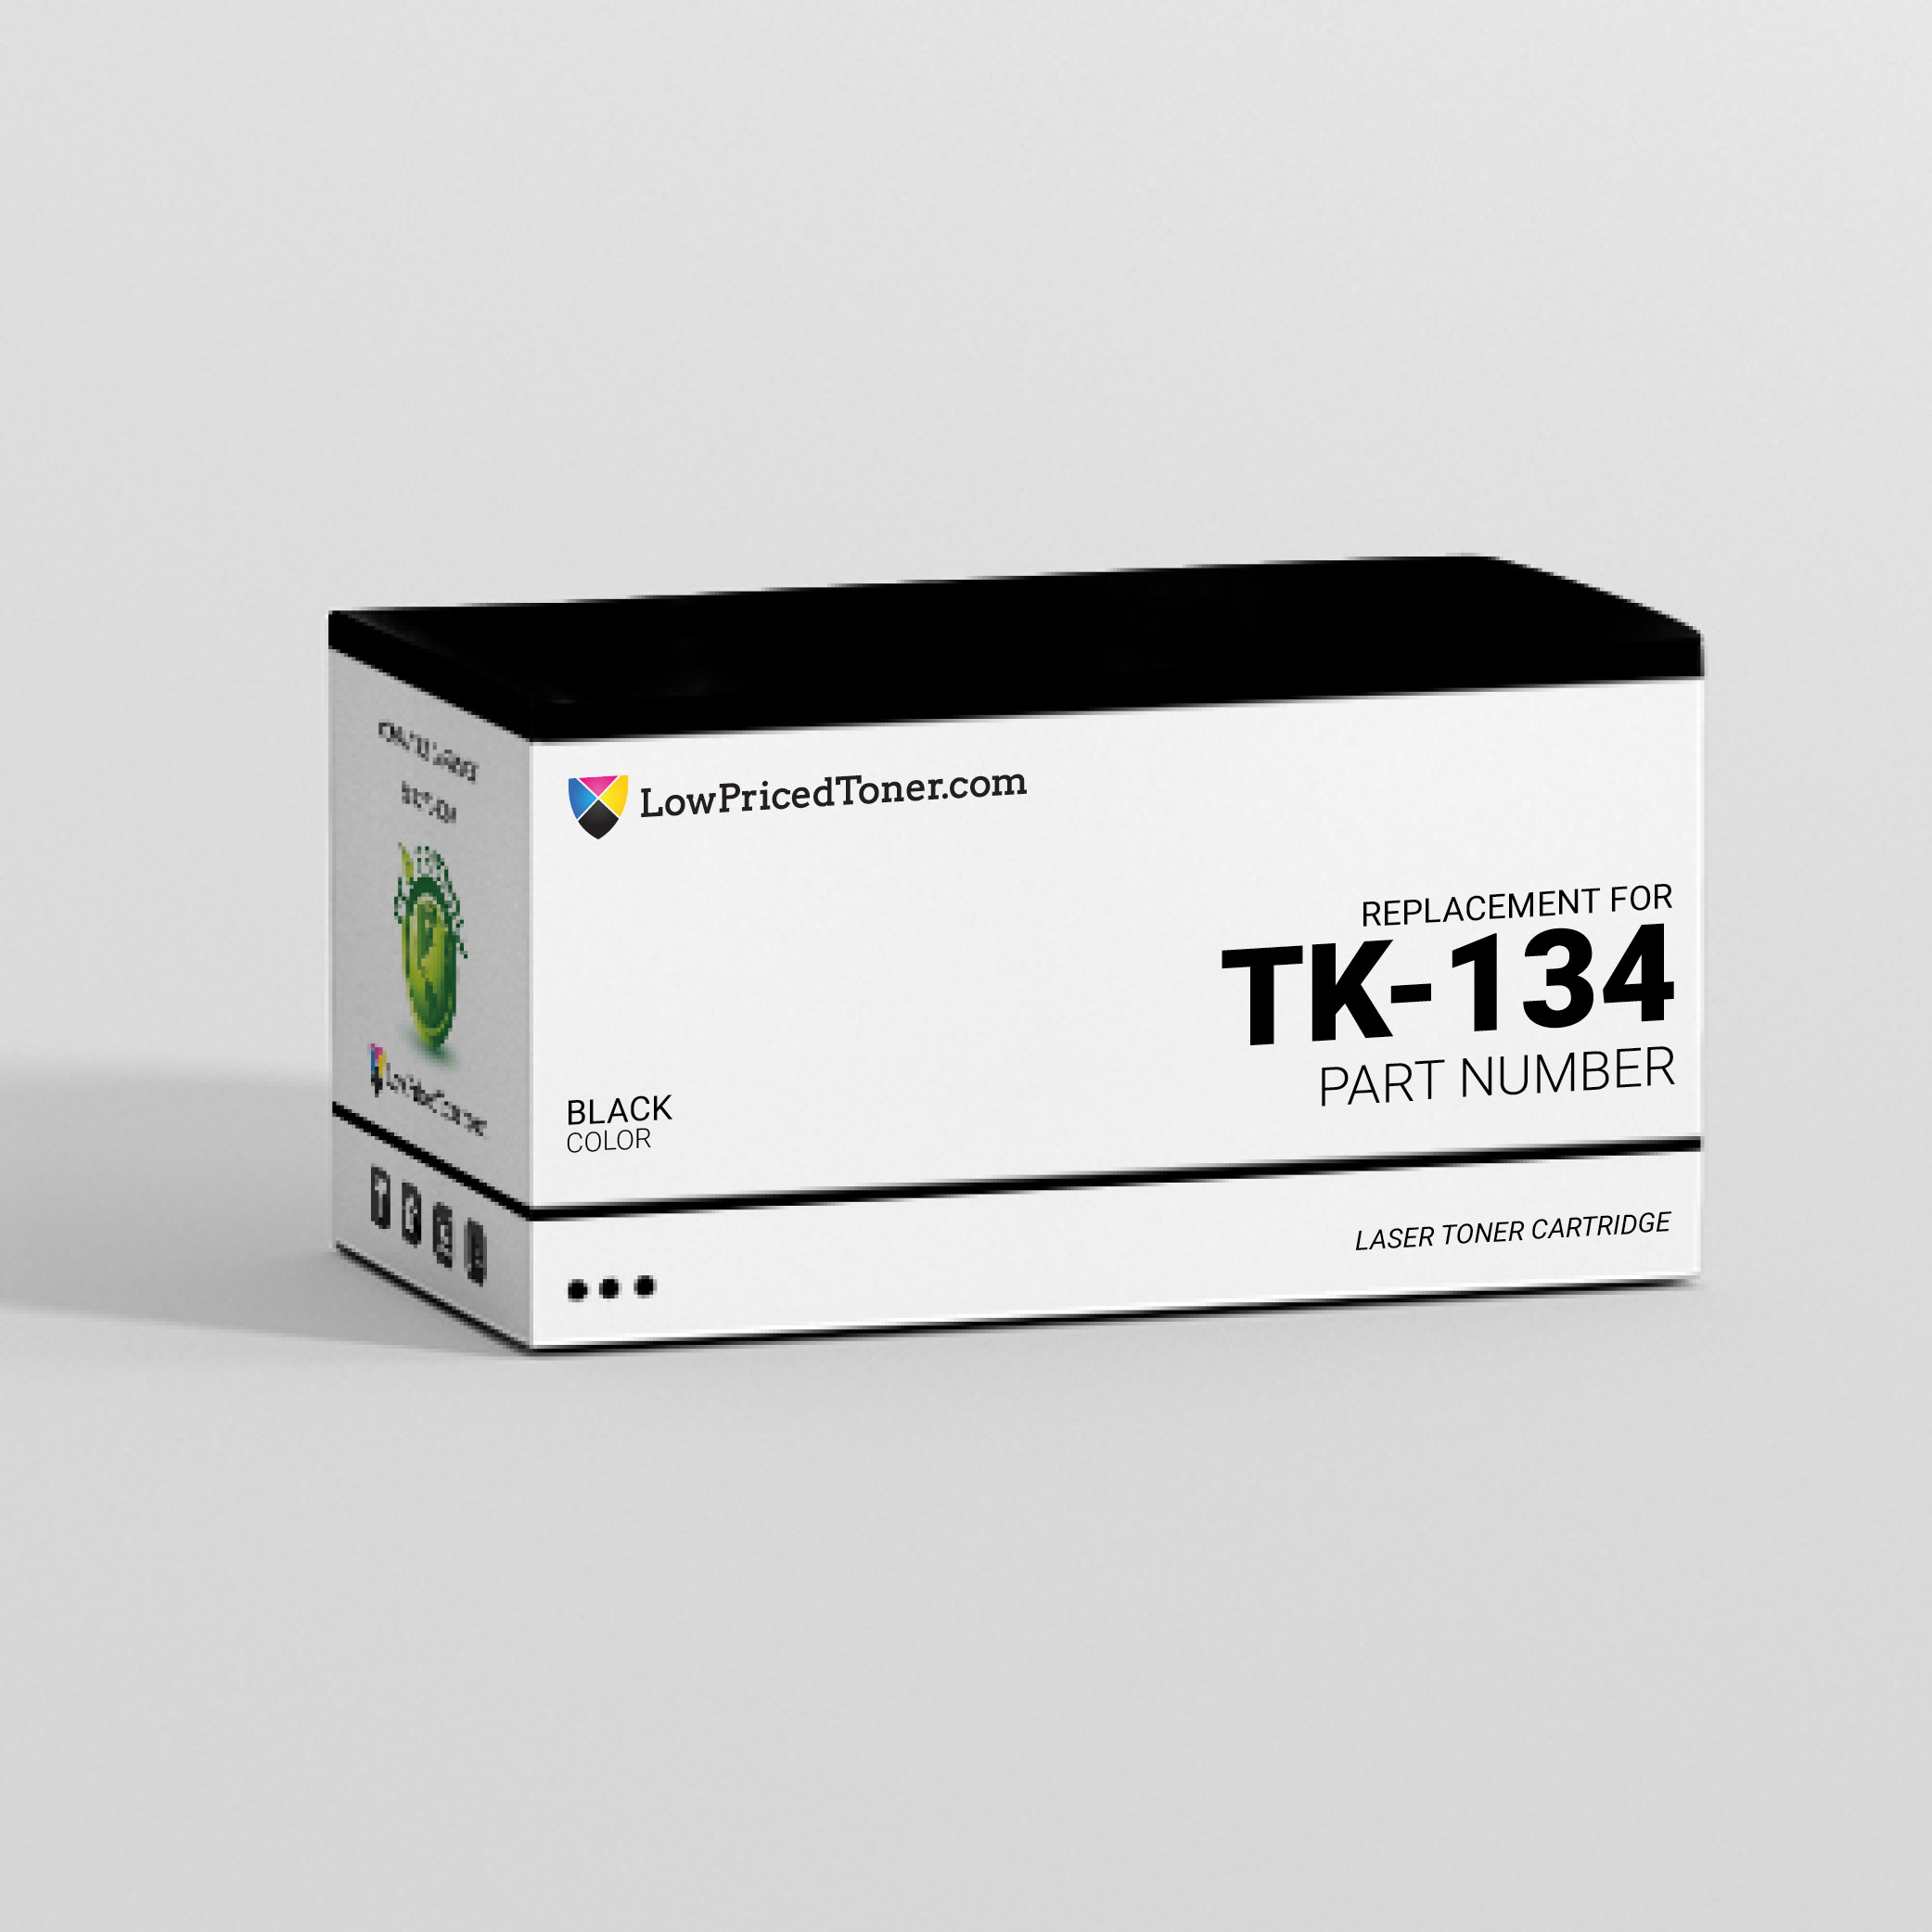 Kyocera Mita TK-134 Compatible Black Laser Toner Cartridge